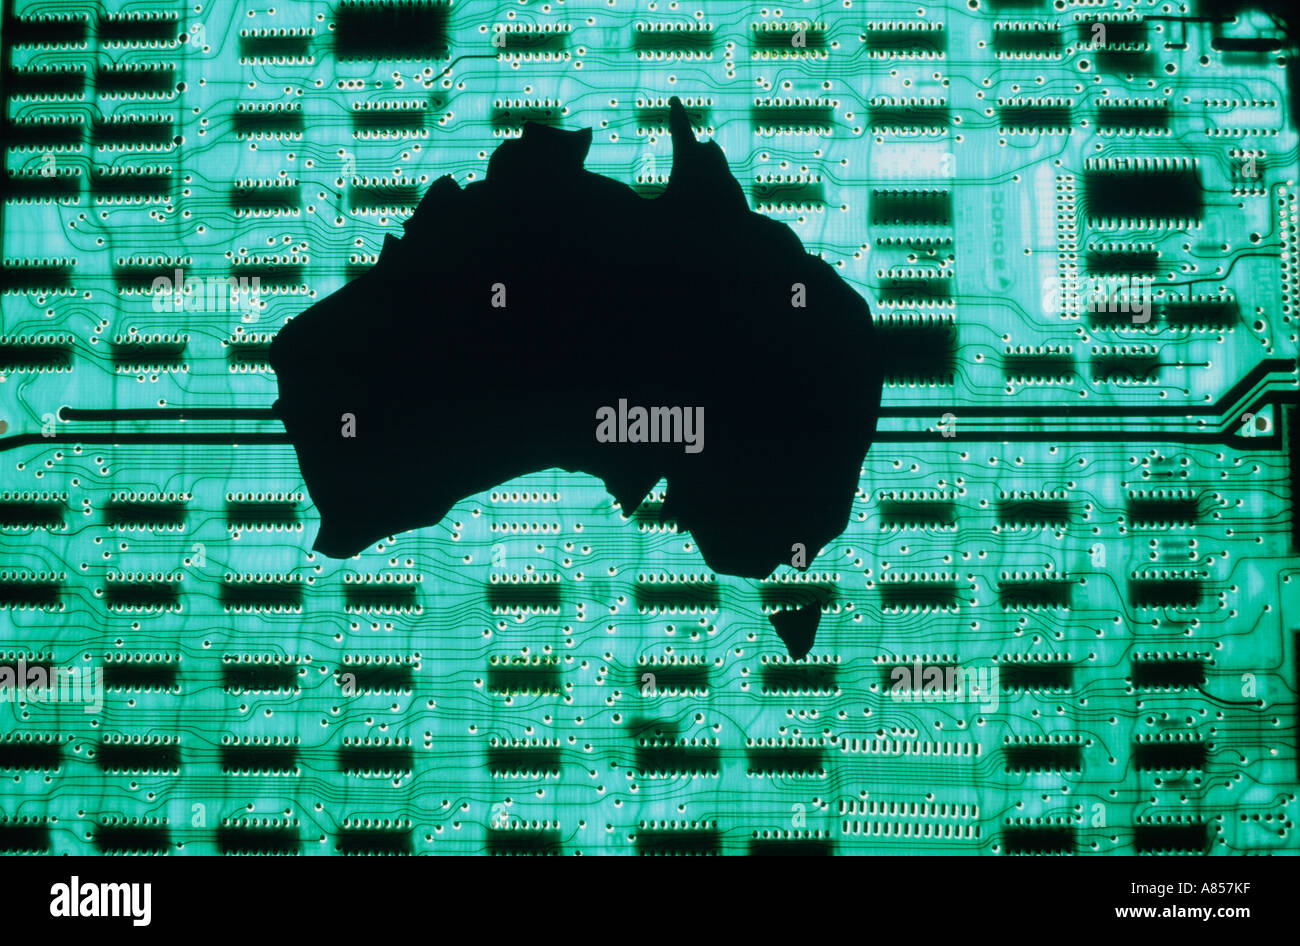 Still life montage concept of Australia continent map silhouetted against computer circuit board. - Stock Image